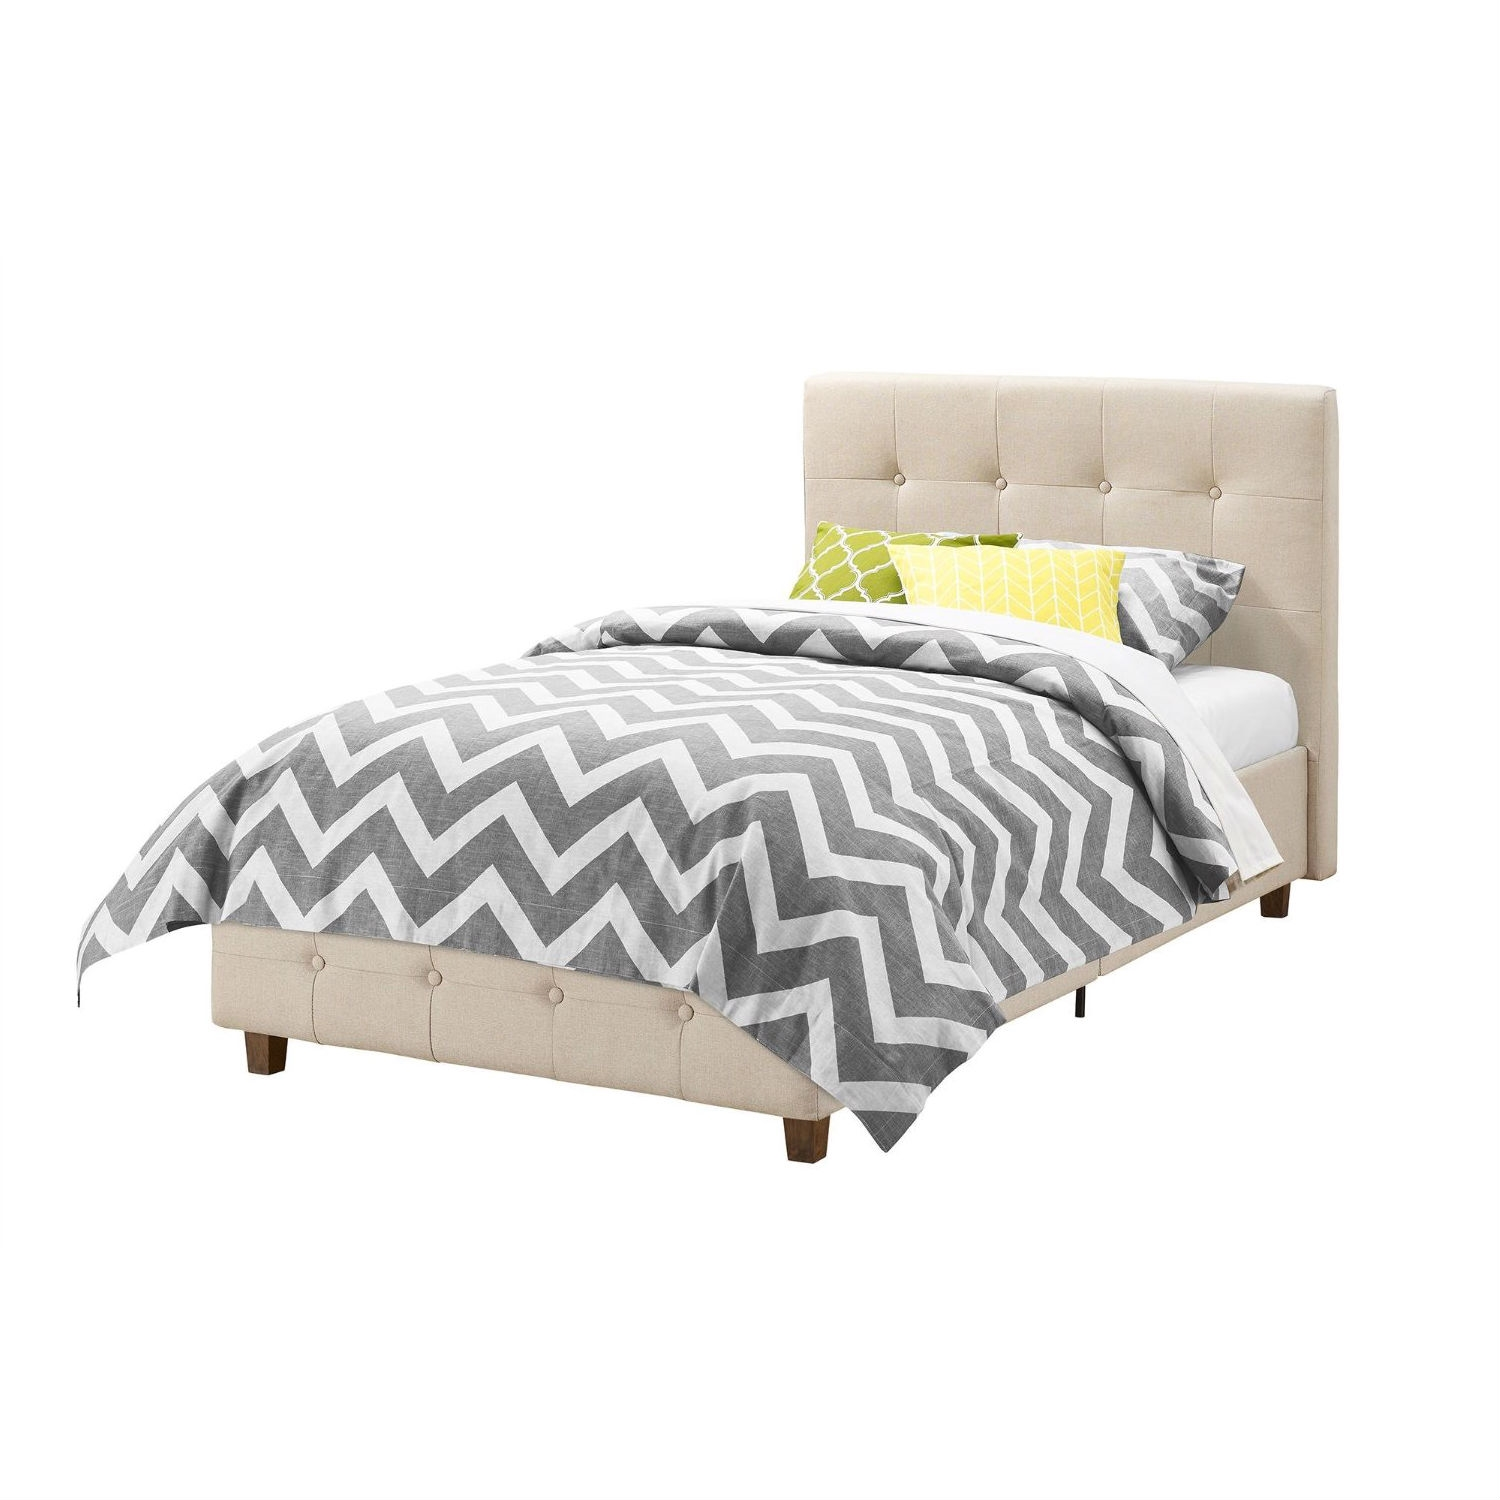 Twin Size Tan Linen Upholstered Platform Bed Frame With